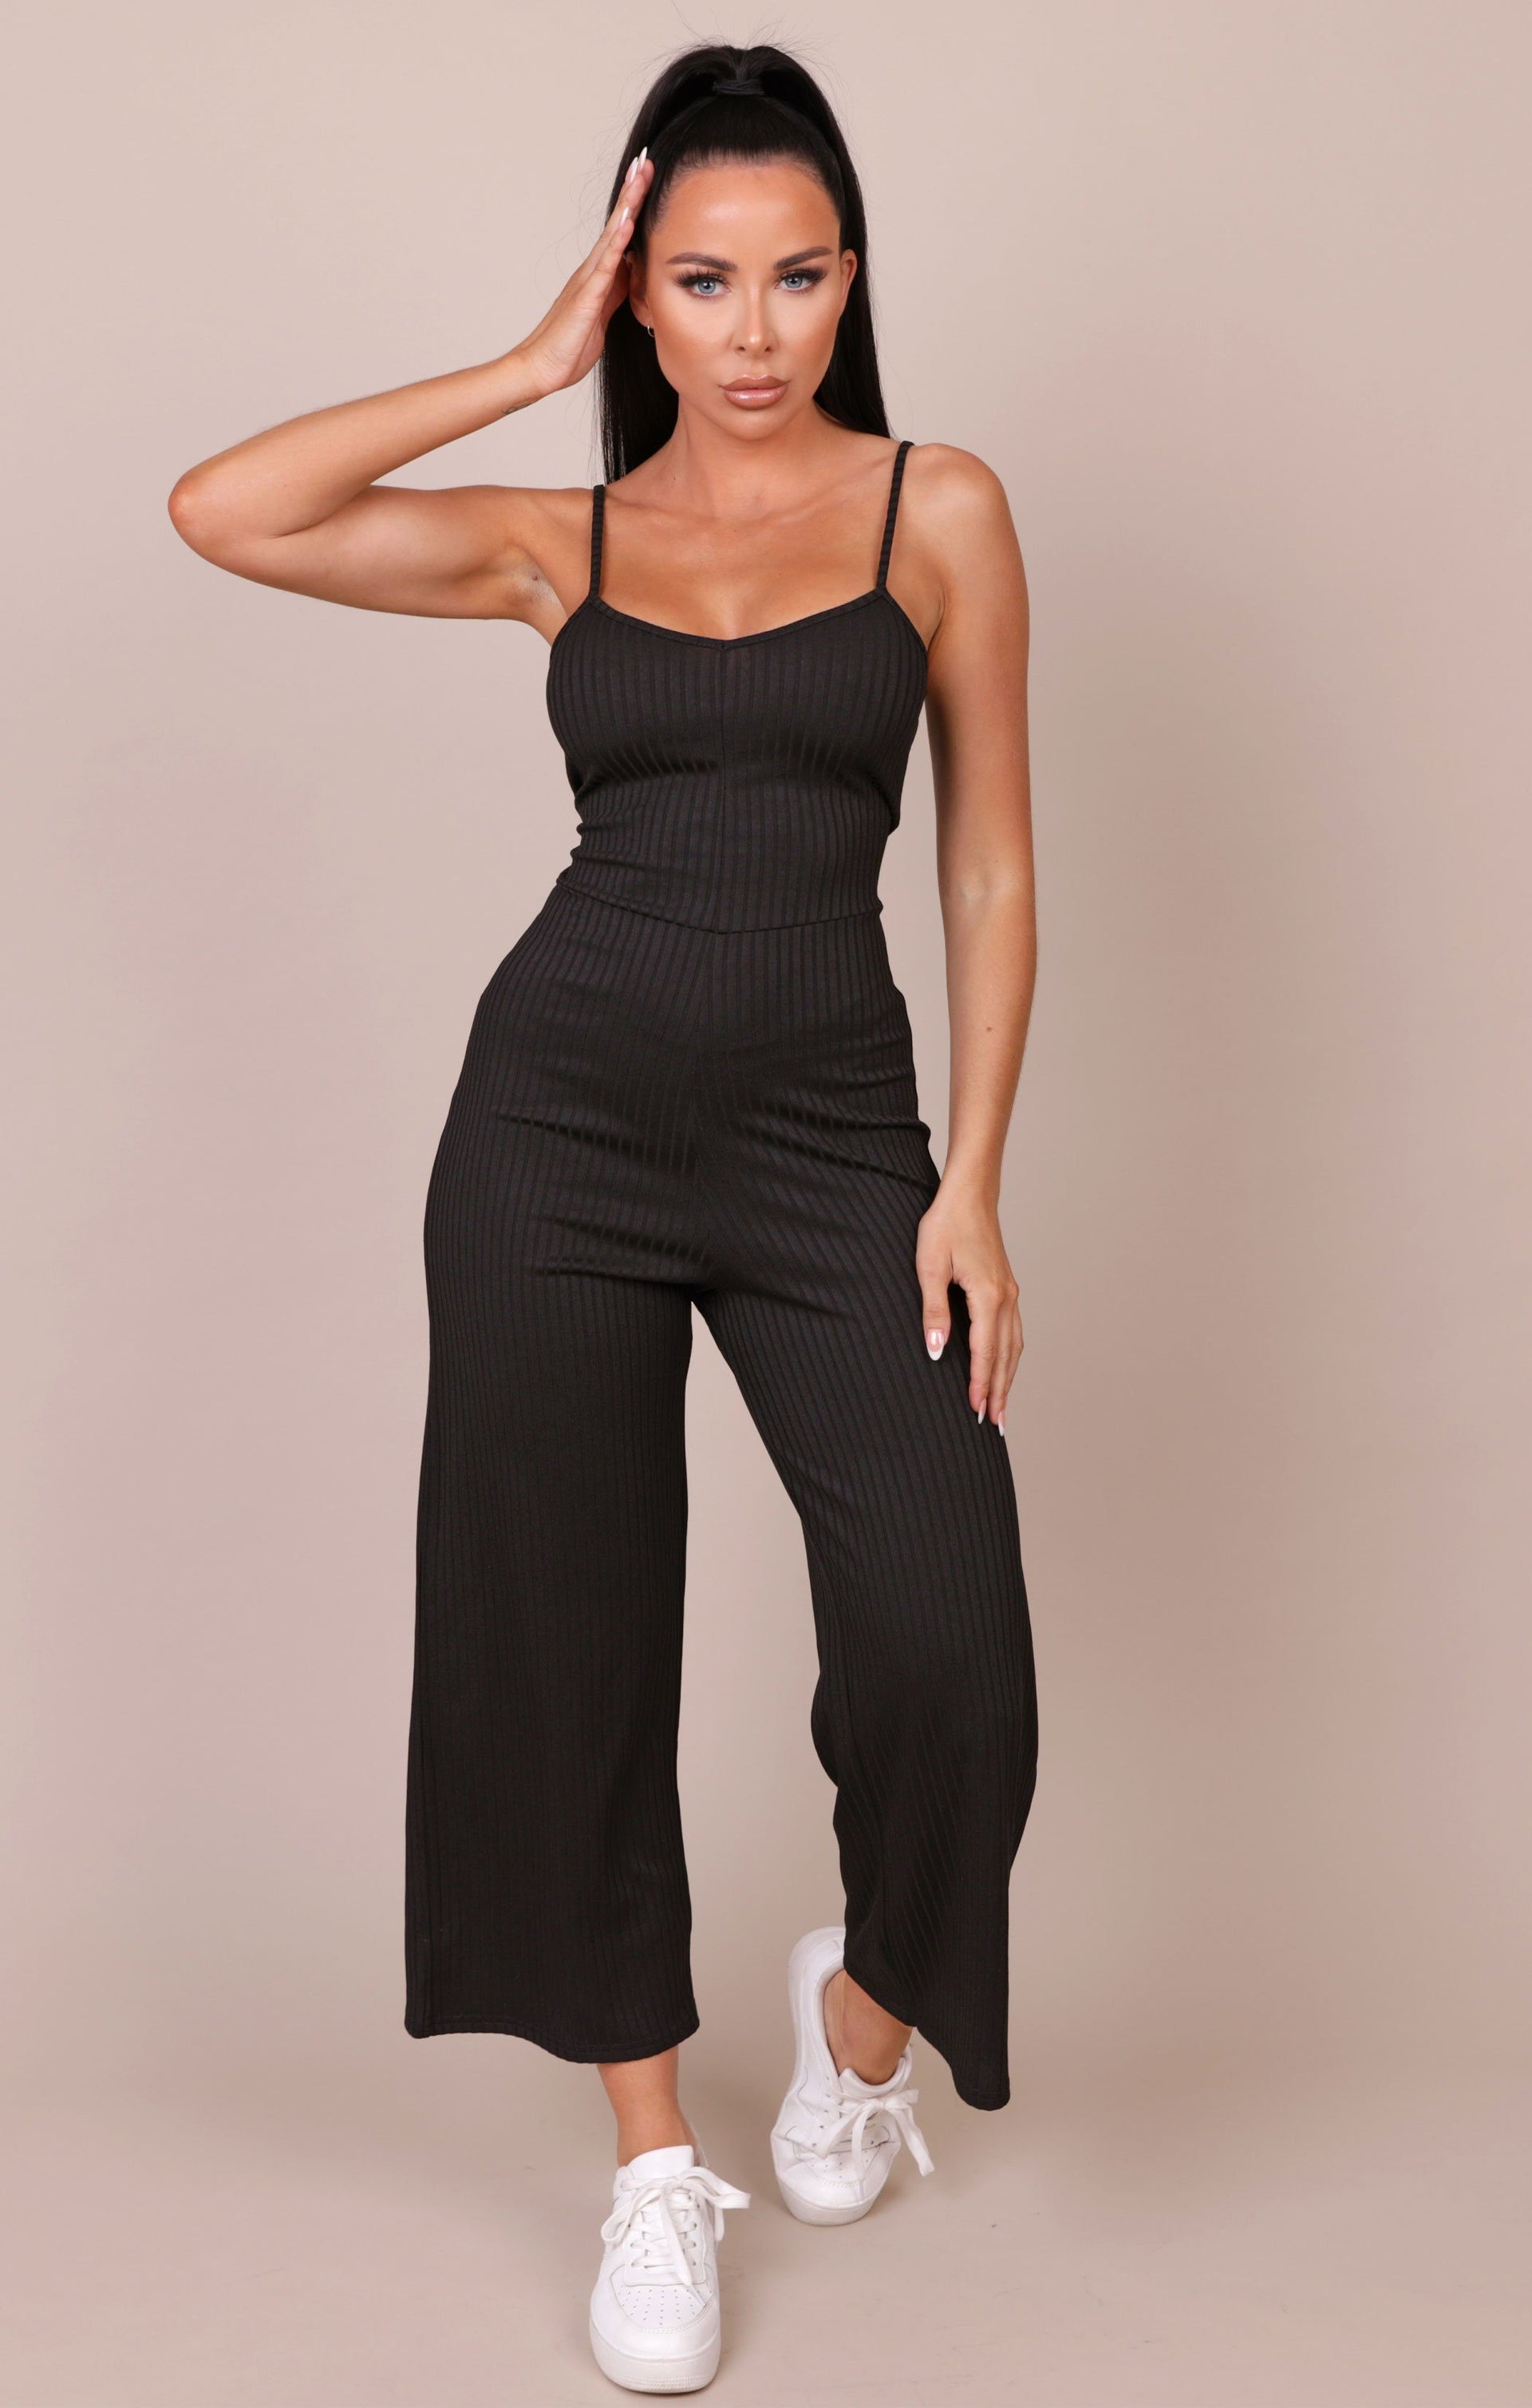 Black Ribbed Flare Leg Jumpsuit - Aly NO PRICE DONT PUT LIVE